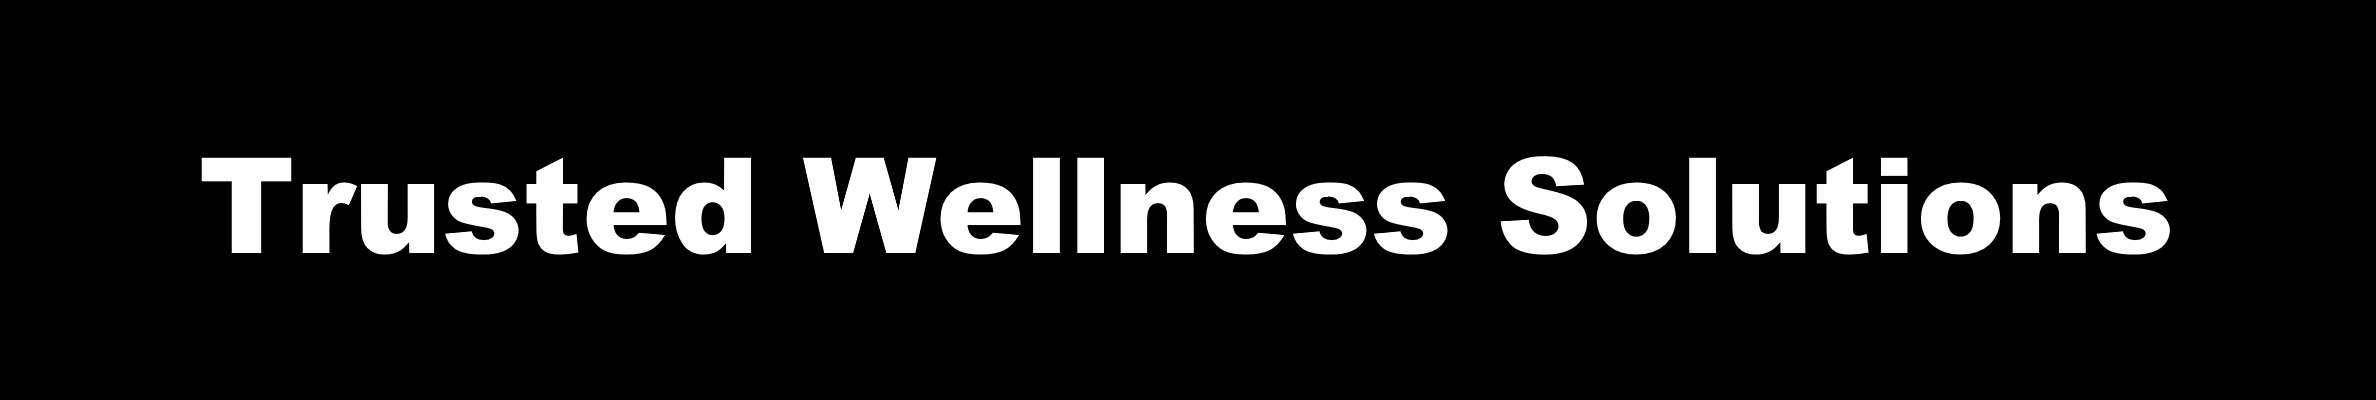 Home Page- Trusted Wellness Solutions.PNG